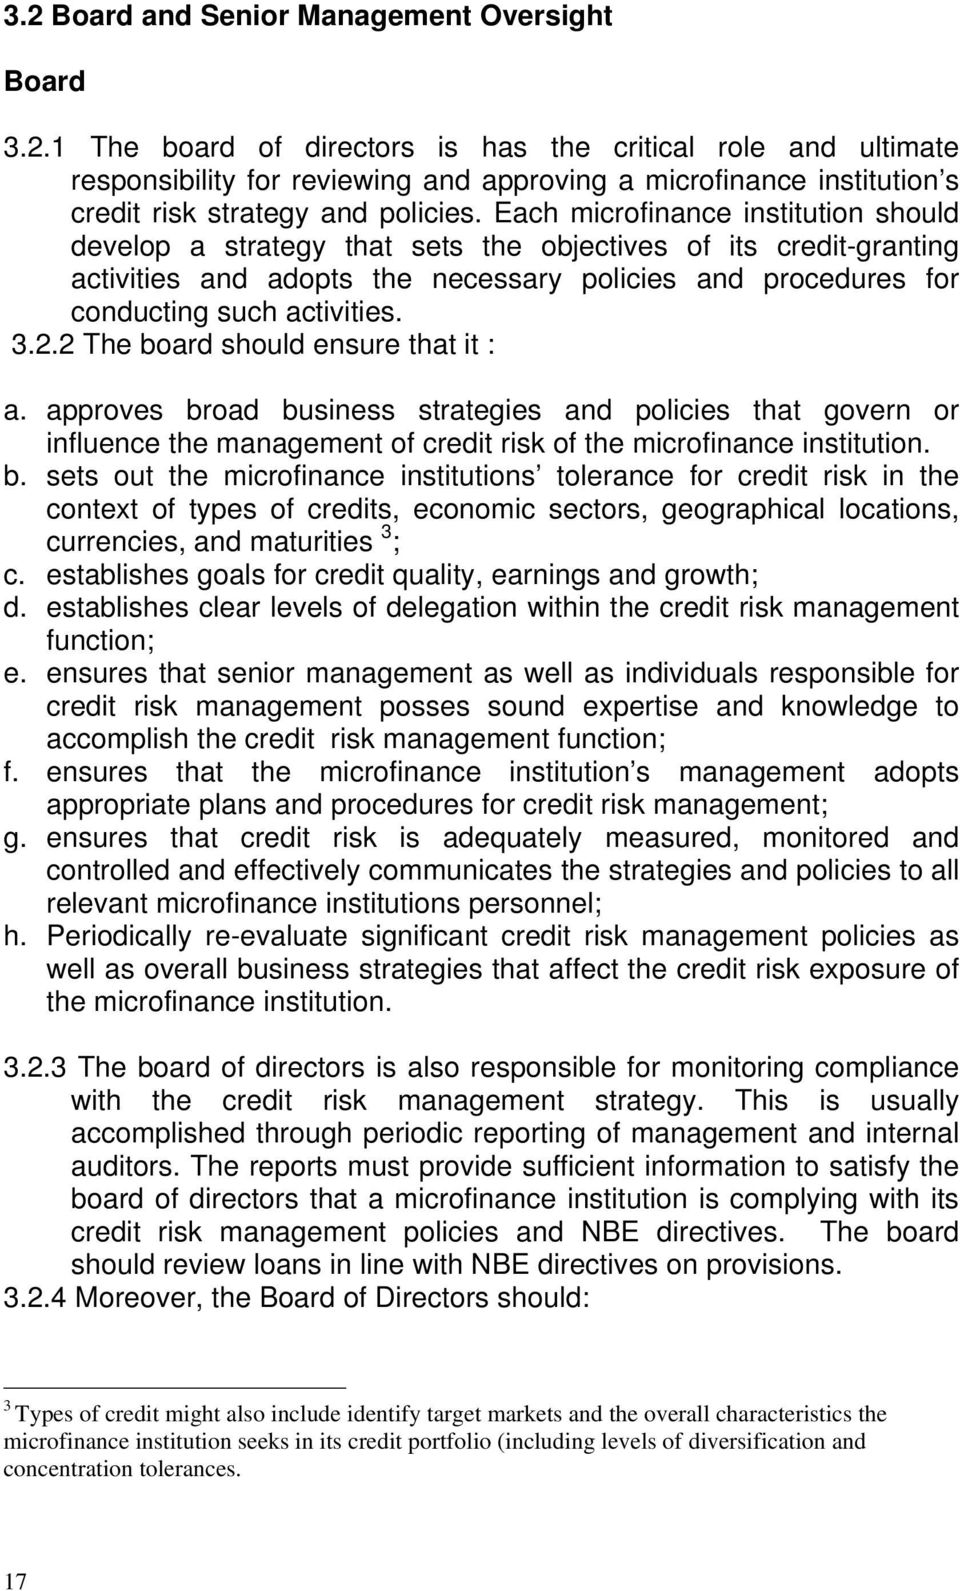 2 The board should ensure that it : a. approves broad business strategies and policies that govern or influence the management of credit risk of the microfinance institution. b. sets out the microfinance institutions tolerance for credit risk in the context of types of credits, economic sectors, geographical locations, currencies, and maturities 3 ; c.